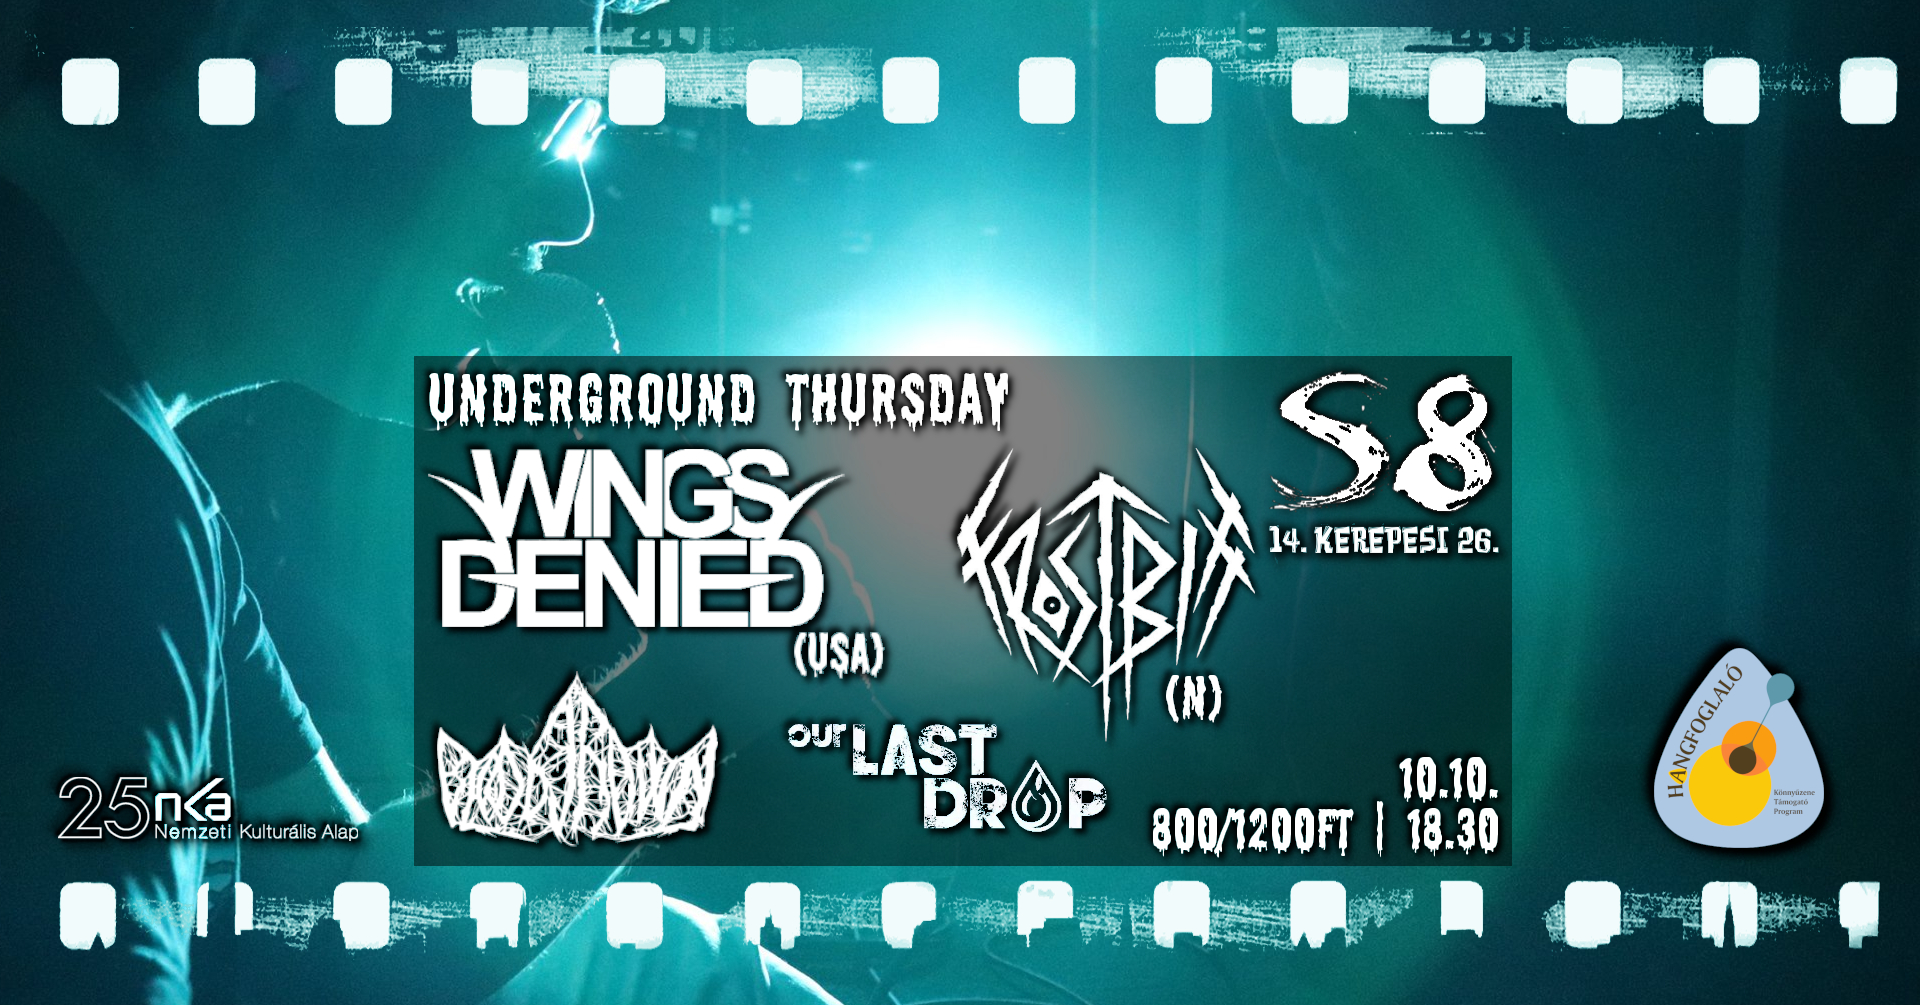 Wings Denied [USA] I Frostbitt [N] I Our Last Drop I Bloodcrown